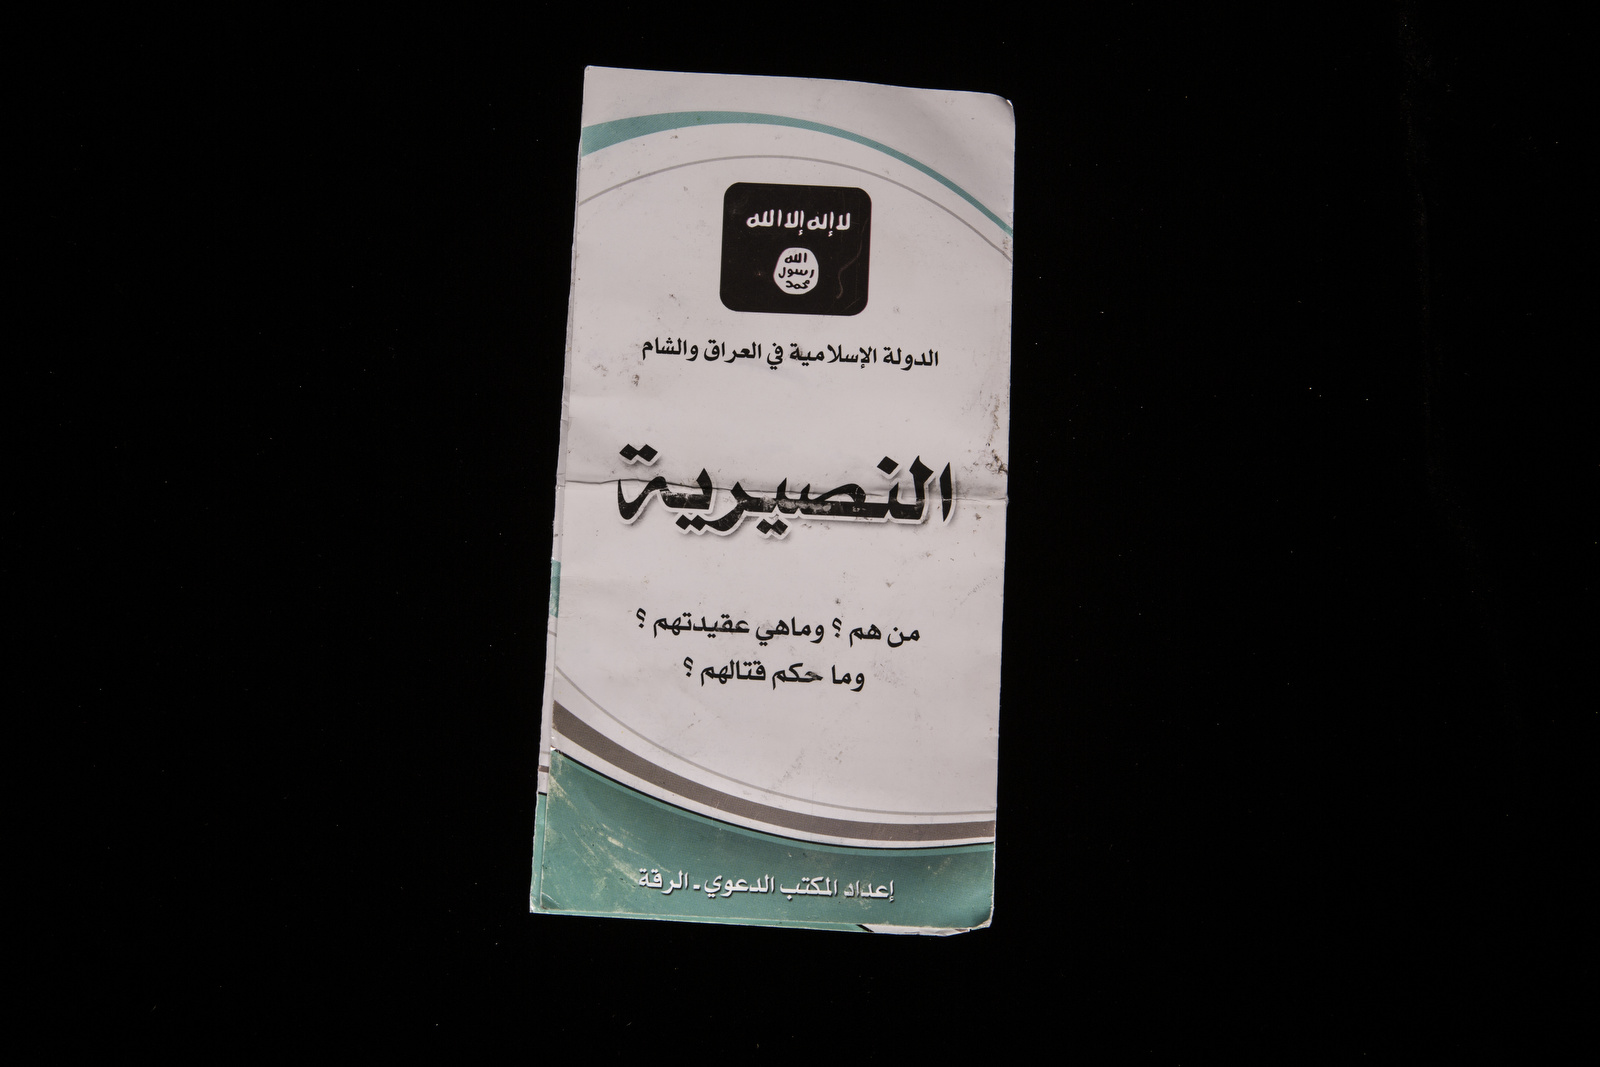 Javier Espinosa was given this jihadi literature by his IS (formerly ISIS) captors while he was held hostage in Syria for nearly six months.